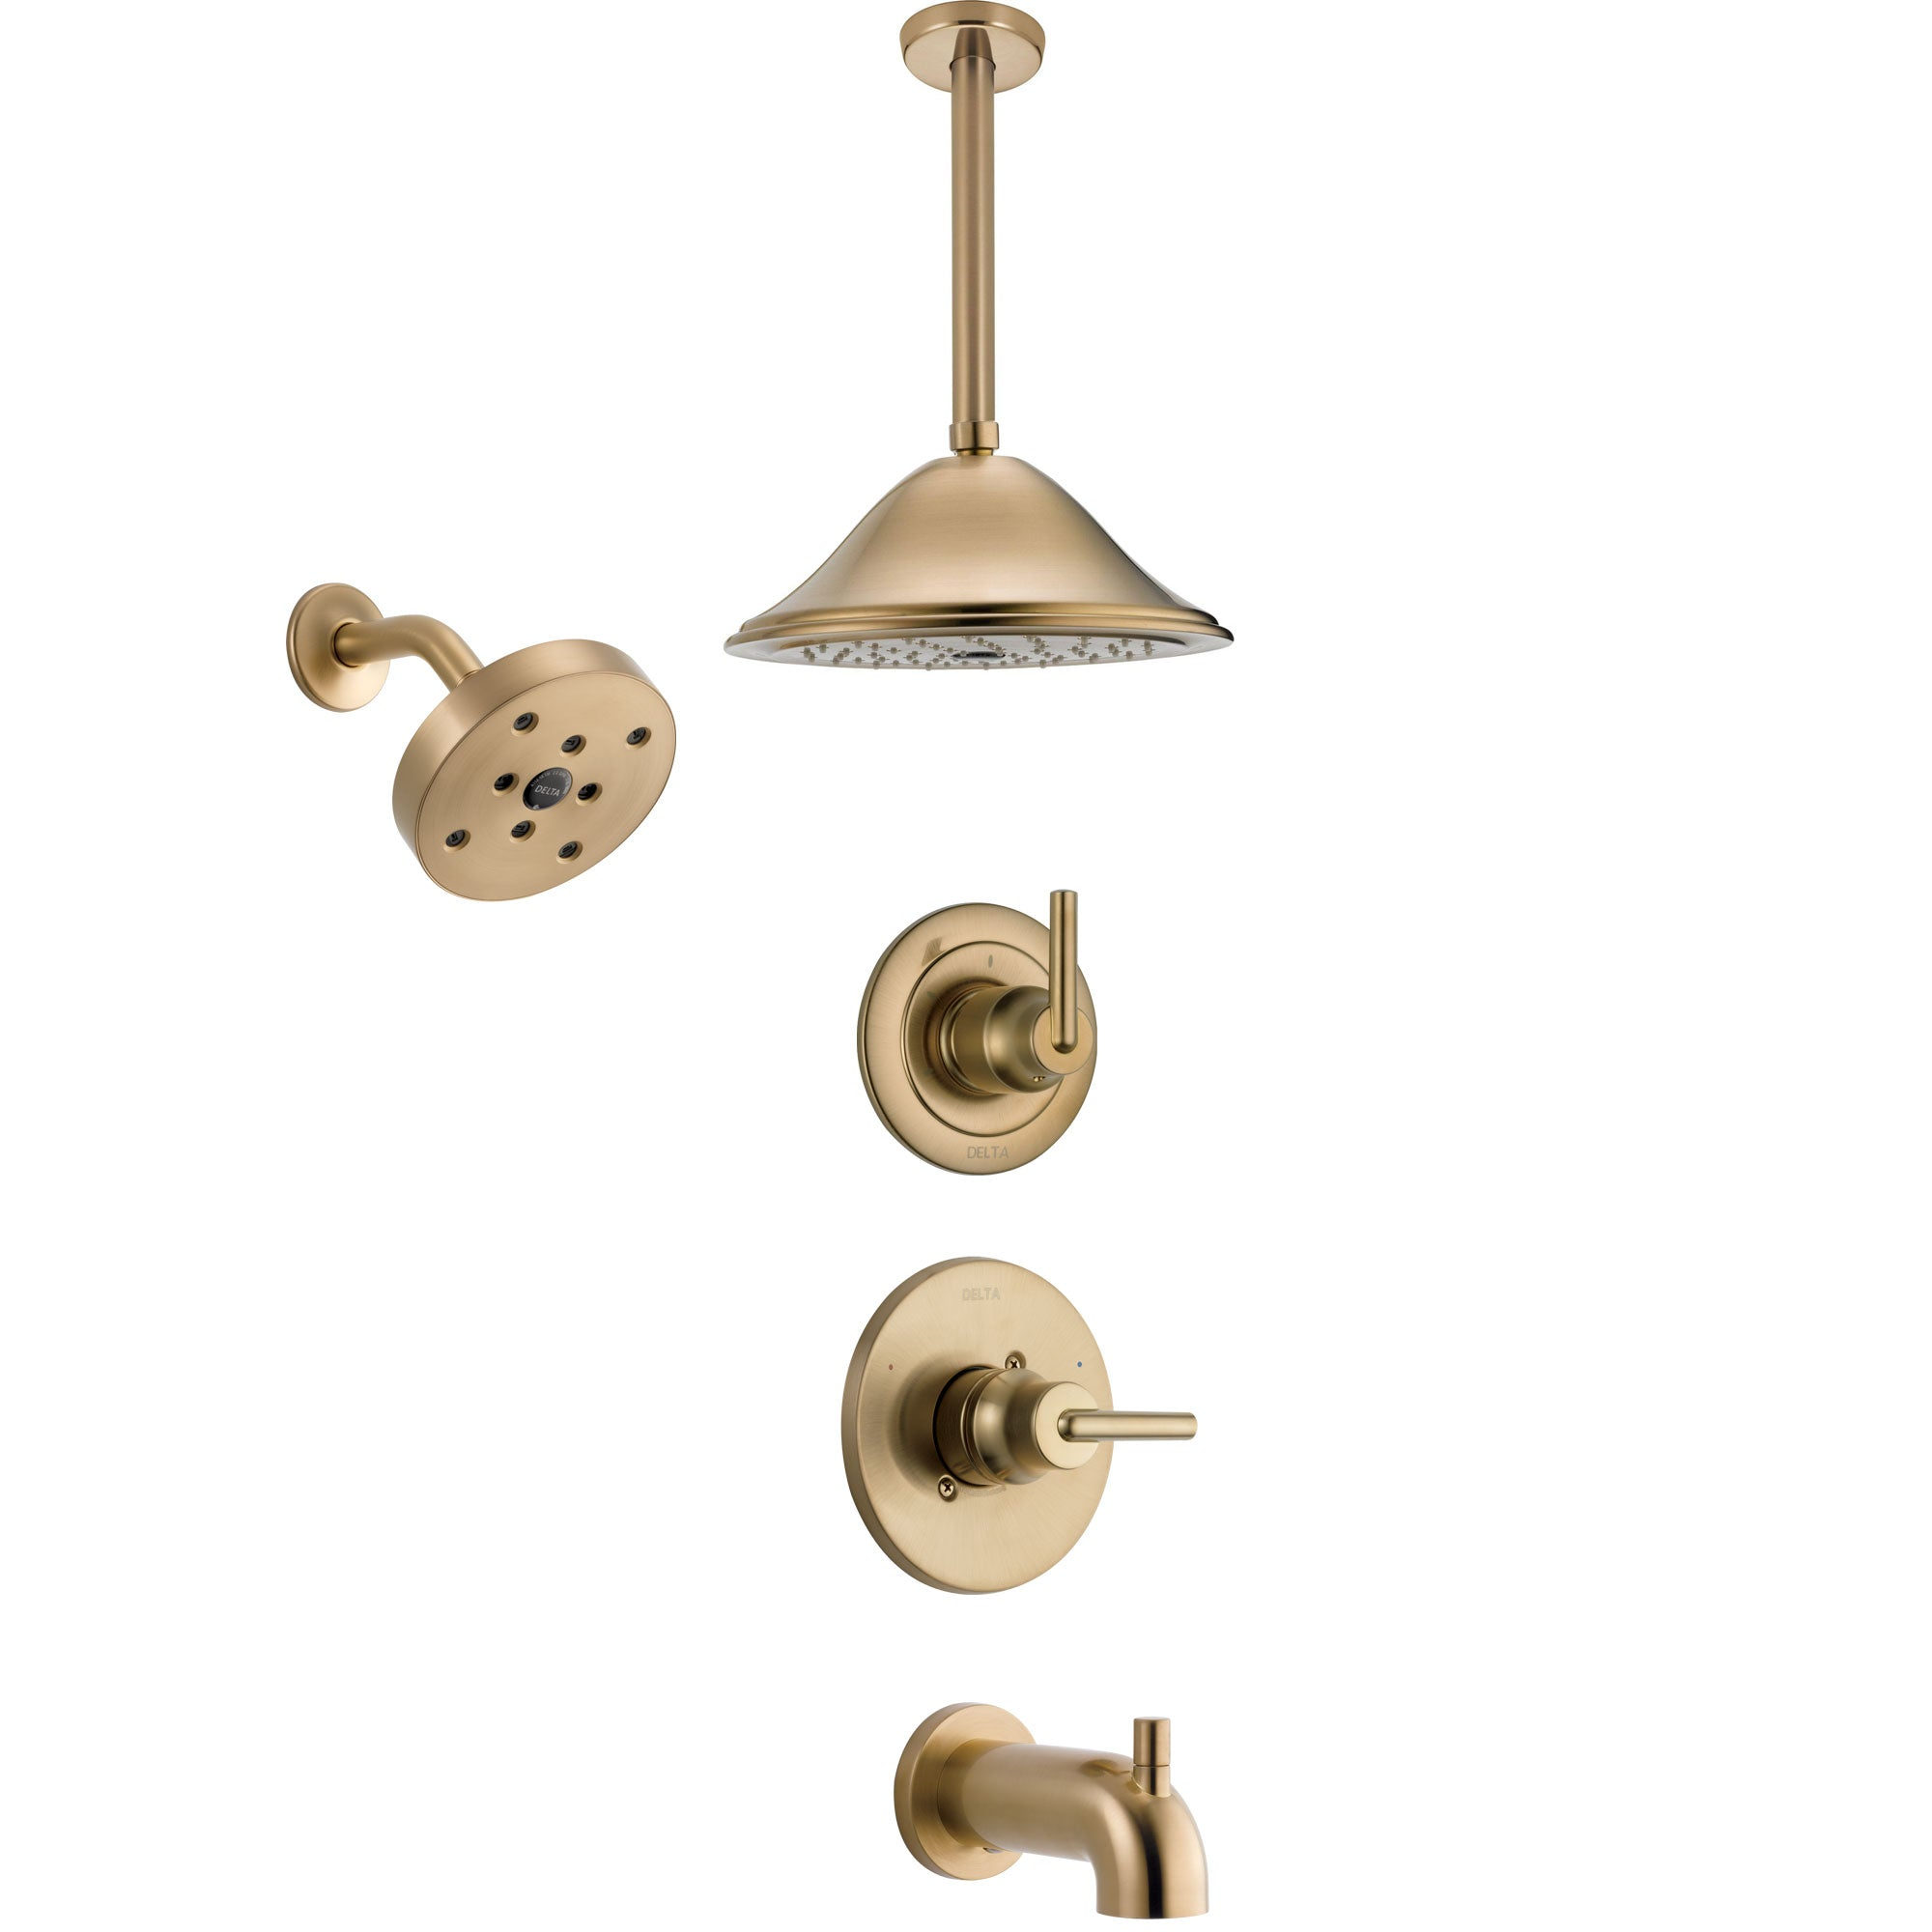 Delta Trinsic Champagne Bronze Tub and Shower System with Control Handle, 3-Setting Diverter, Showerhead, and Ceiling Mount Showerhead SS14459CZ4